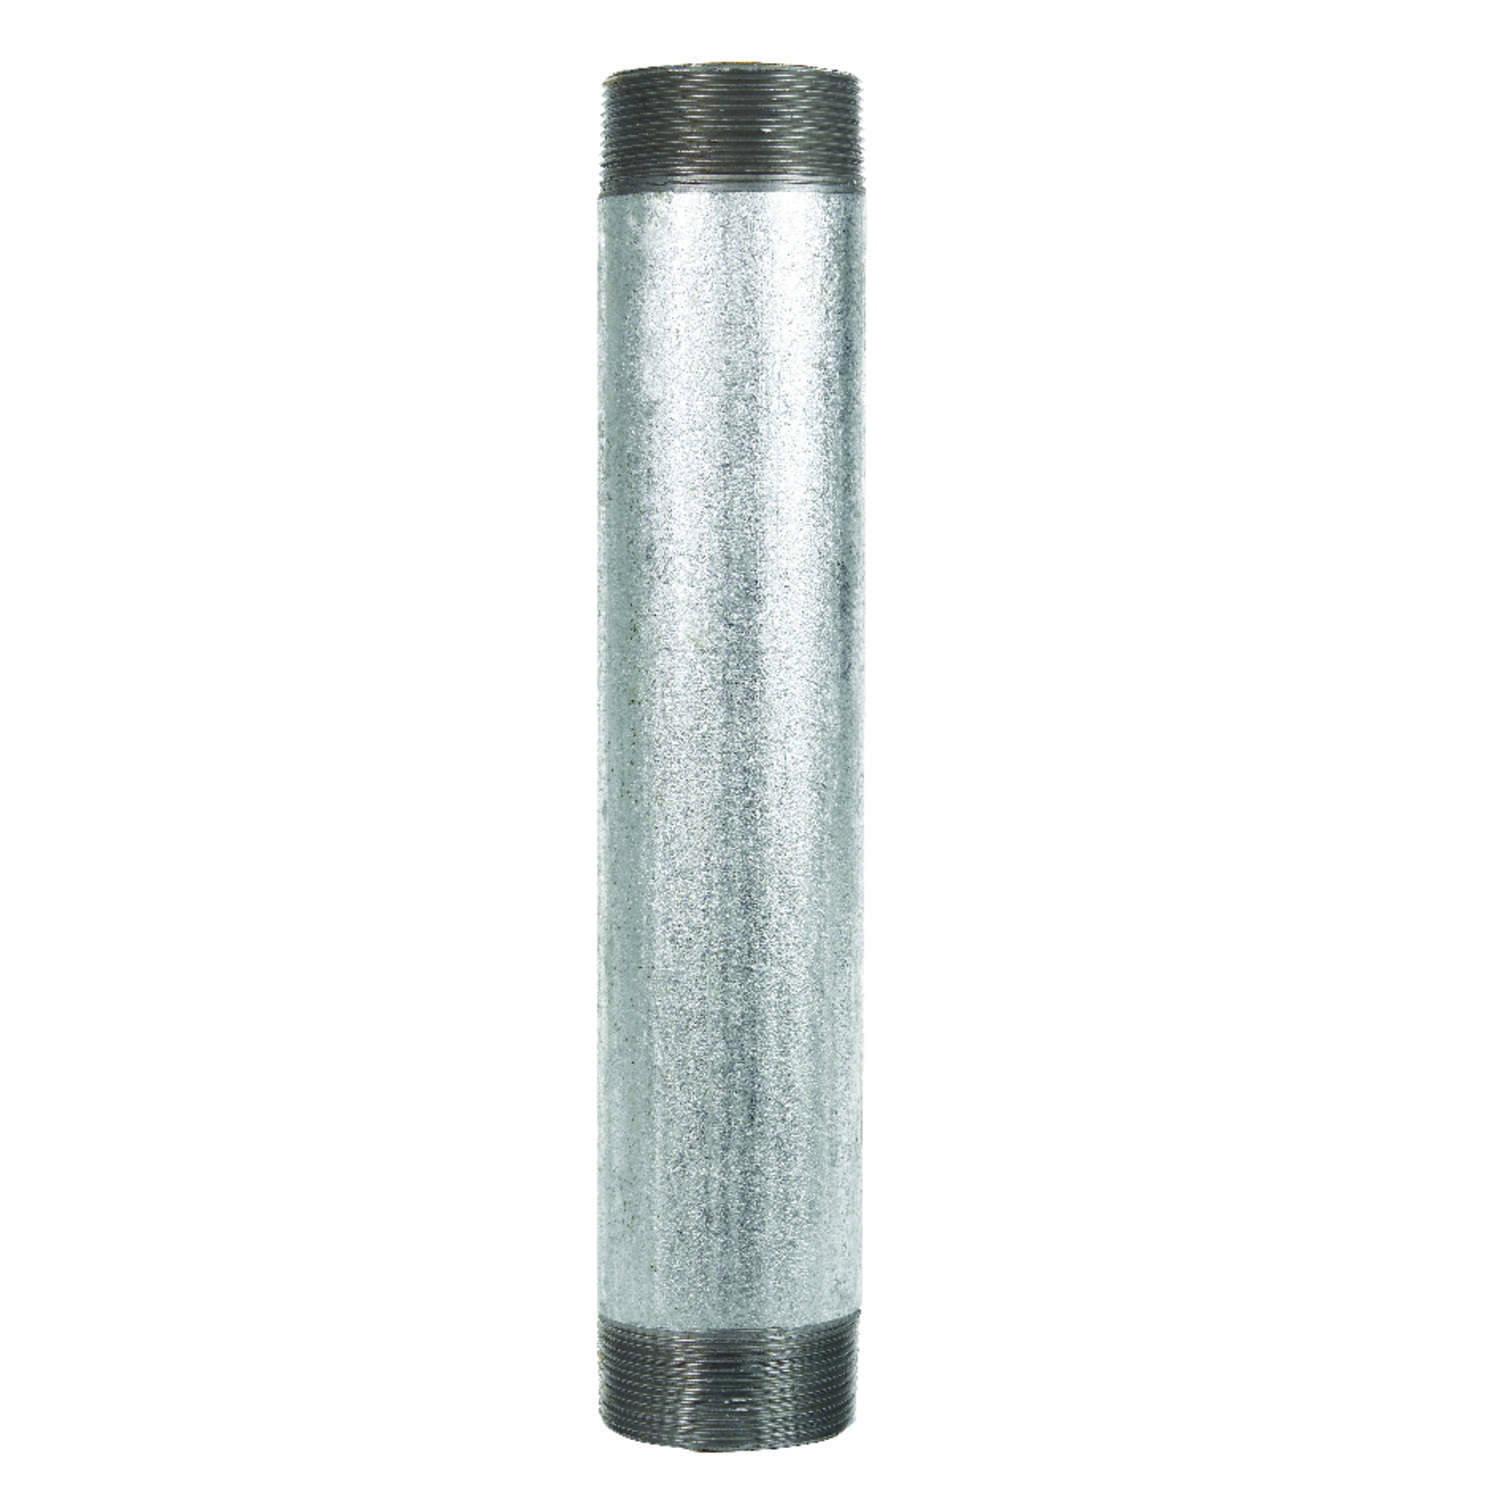 BK Products  Southland  3 in. MPT   x 3 in. Dia. x 8 in. L MPT  Galvanized  Steel  Nipple